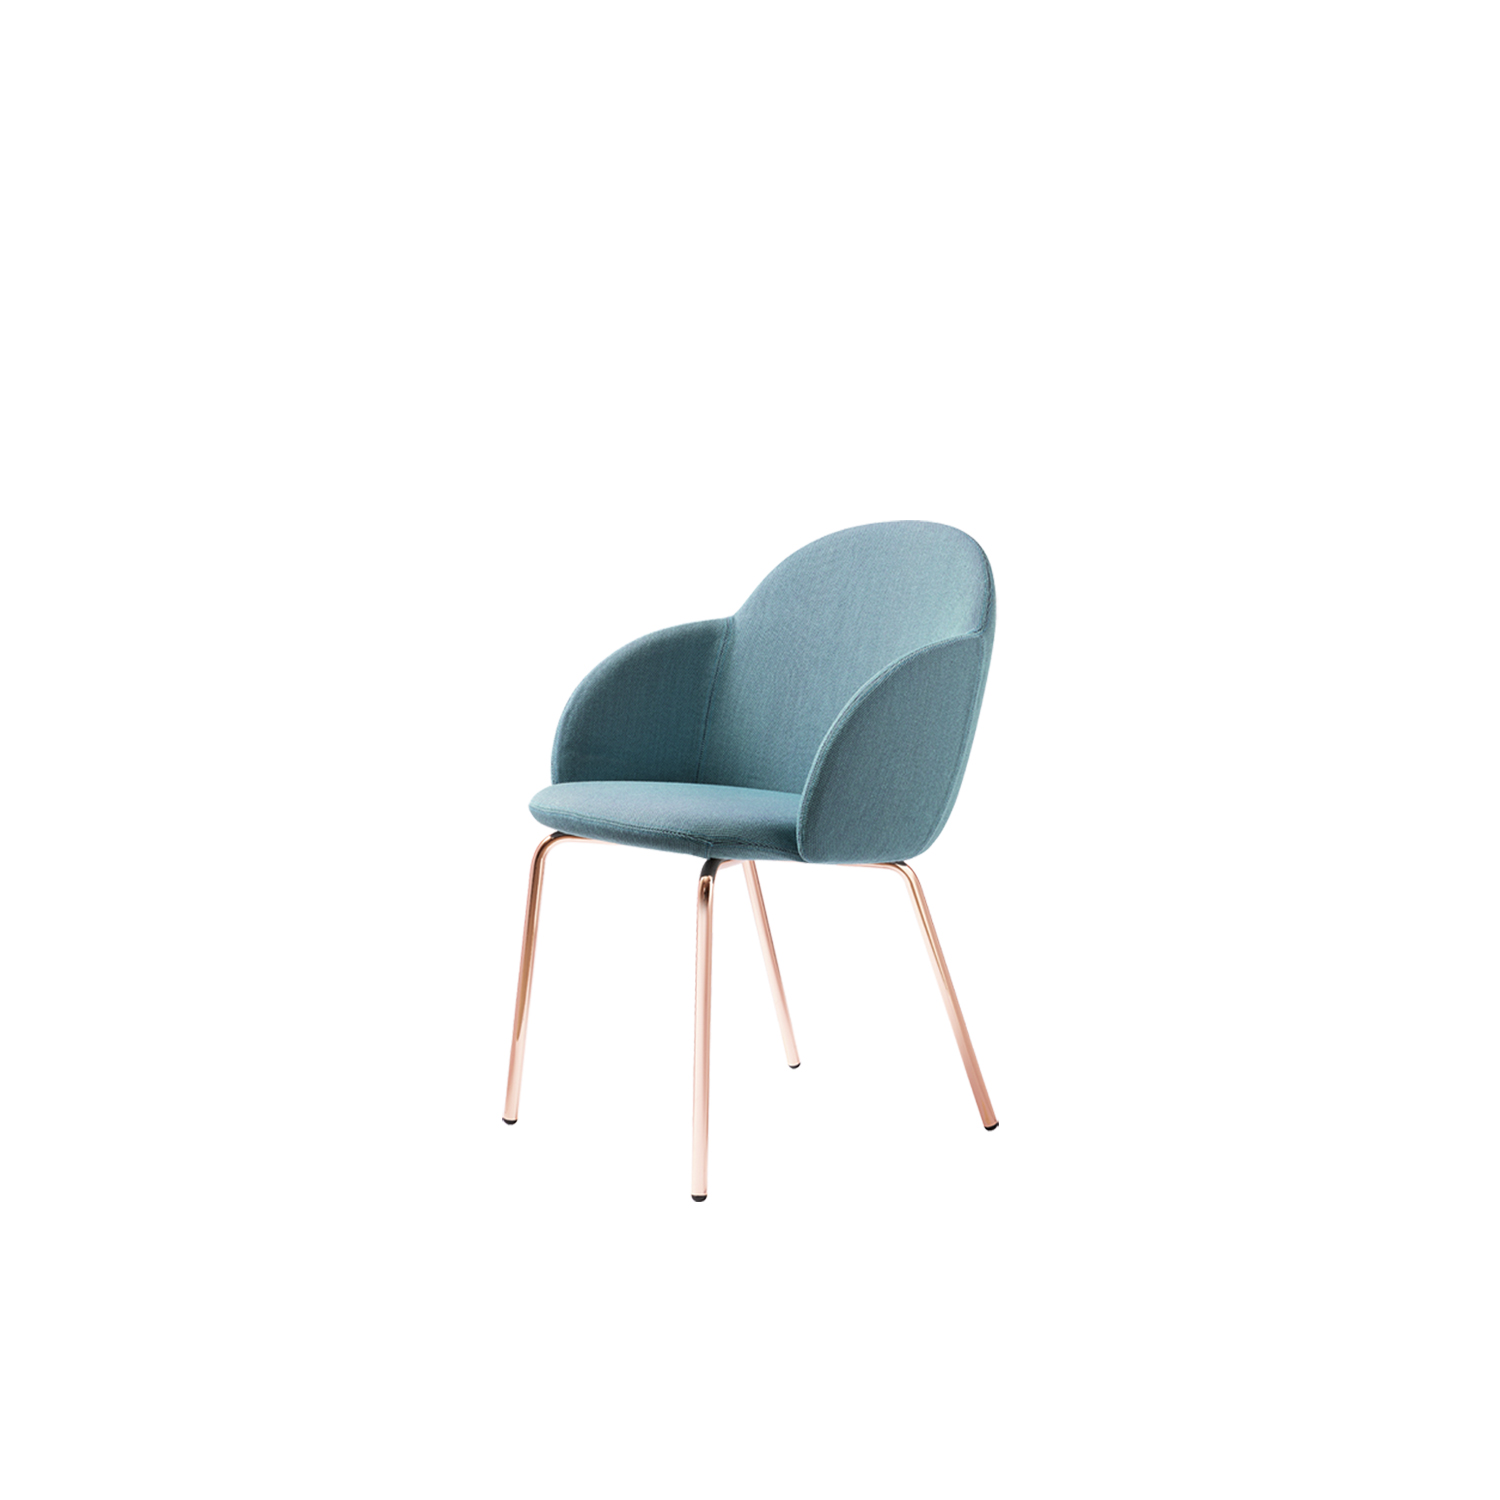 Iola Armchair - Iola shows off design with an international approach, focusing on the ergonomics of the form, ensuring a careful look, one with character. We have given the body the shape of a shell, producing it in expanded polyurethane. Then, on the advice of the hardest to please, we pulled the wings and then the two large arms came out. Iola hints at fashion but comes across as a modern classic. Chair with injected flame-retardant polyurethane foam seat and back upholstered in the listed fabrics. Legs are made in iron rebar with lacquered finish in anthracite, black, white or copper. The body is packed separately from the base.